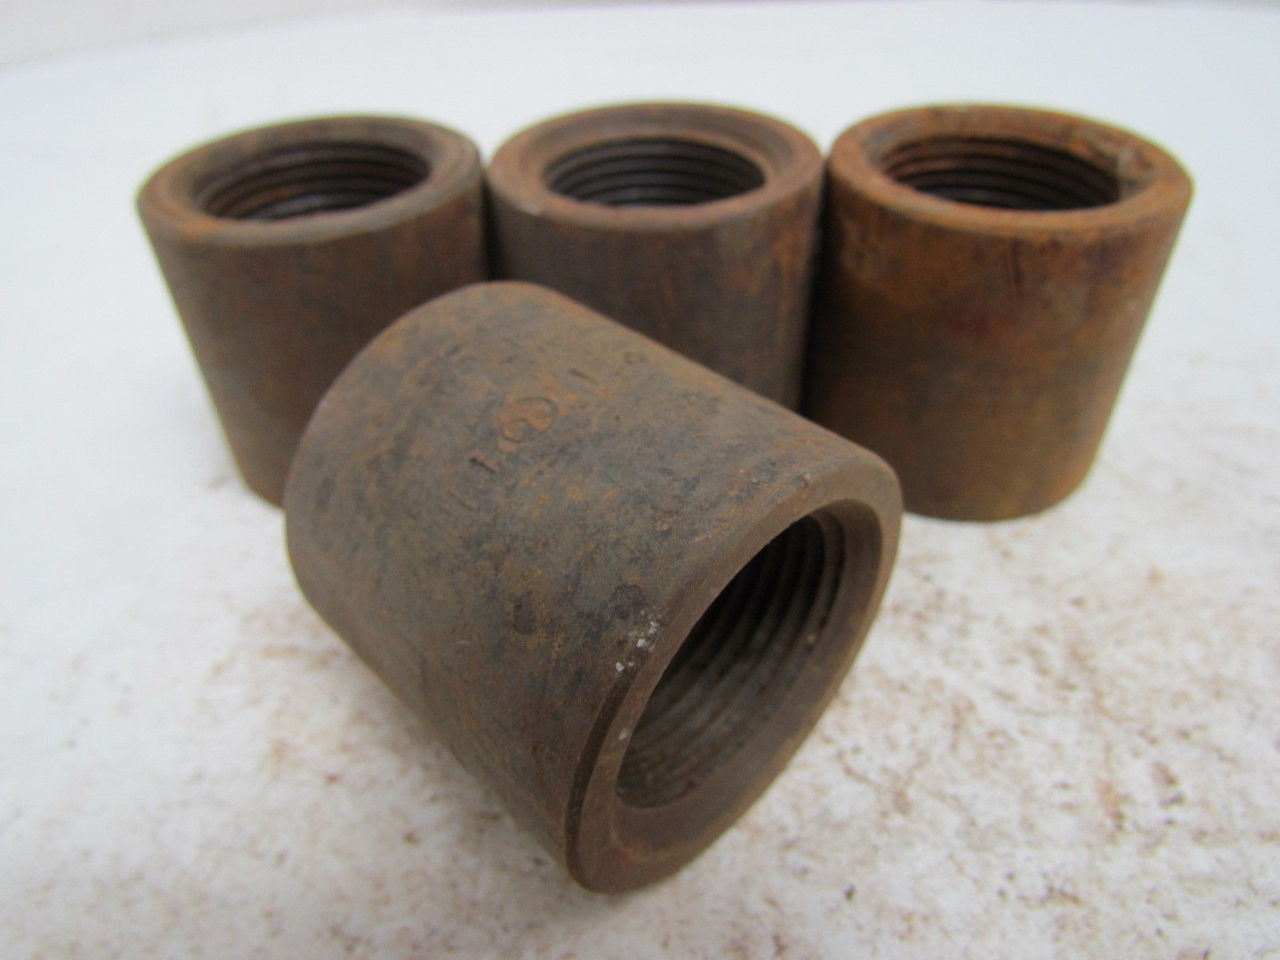 Quot npt black pipe cap class sch forged steel lot